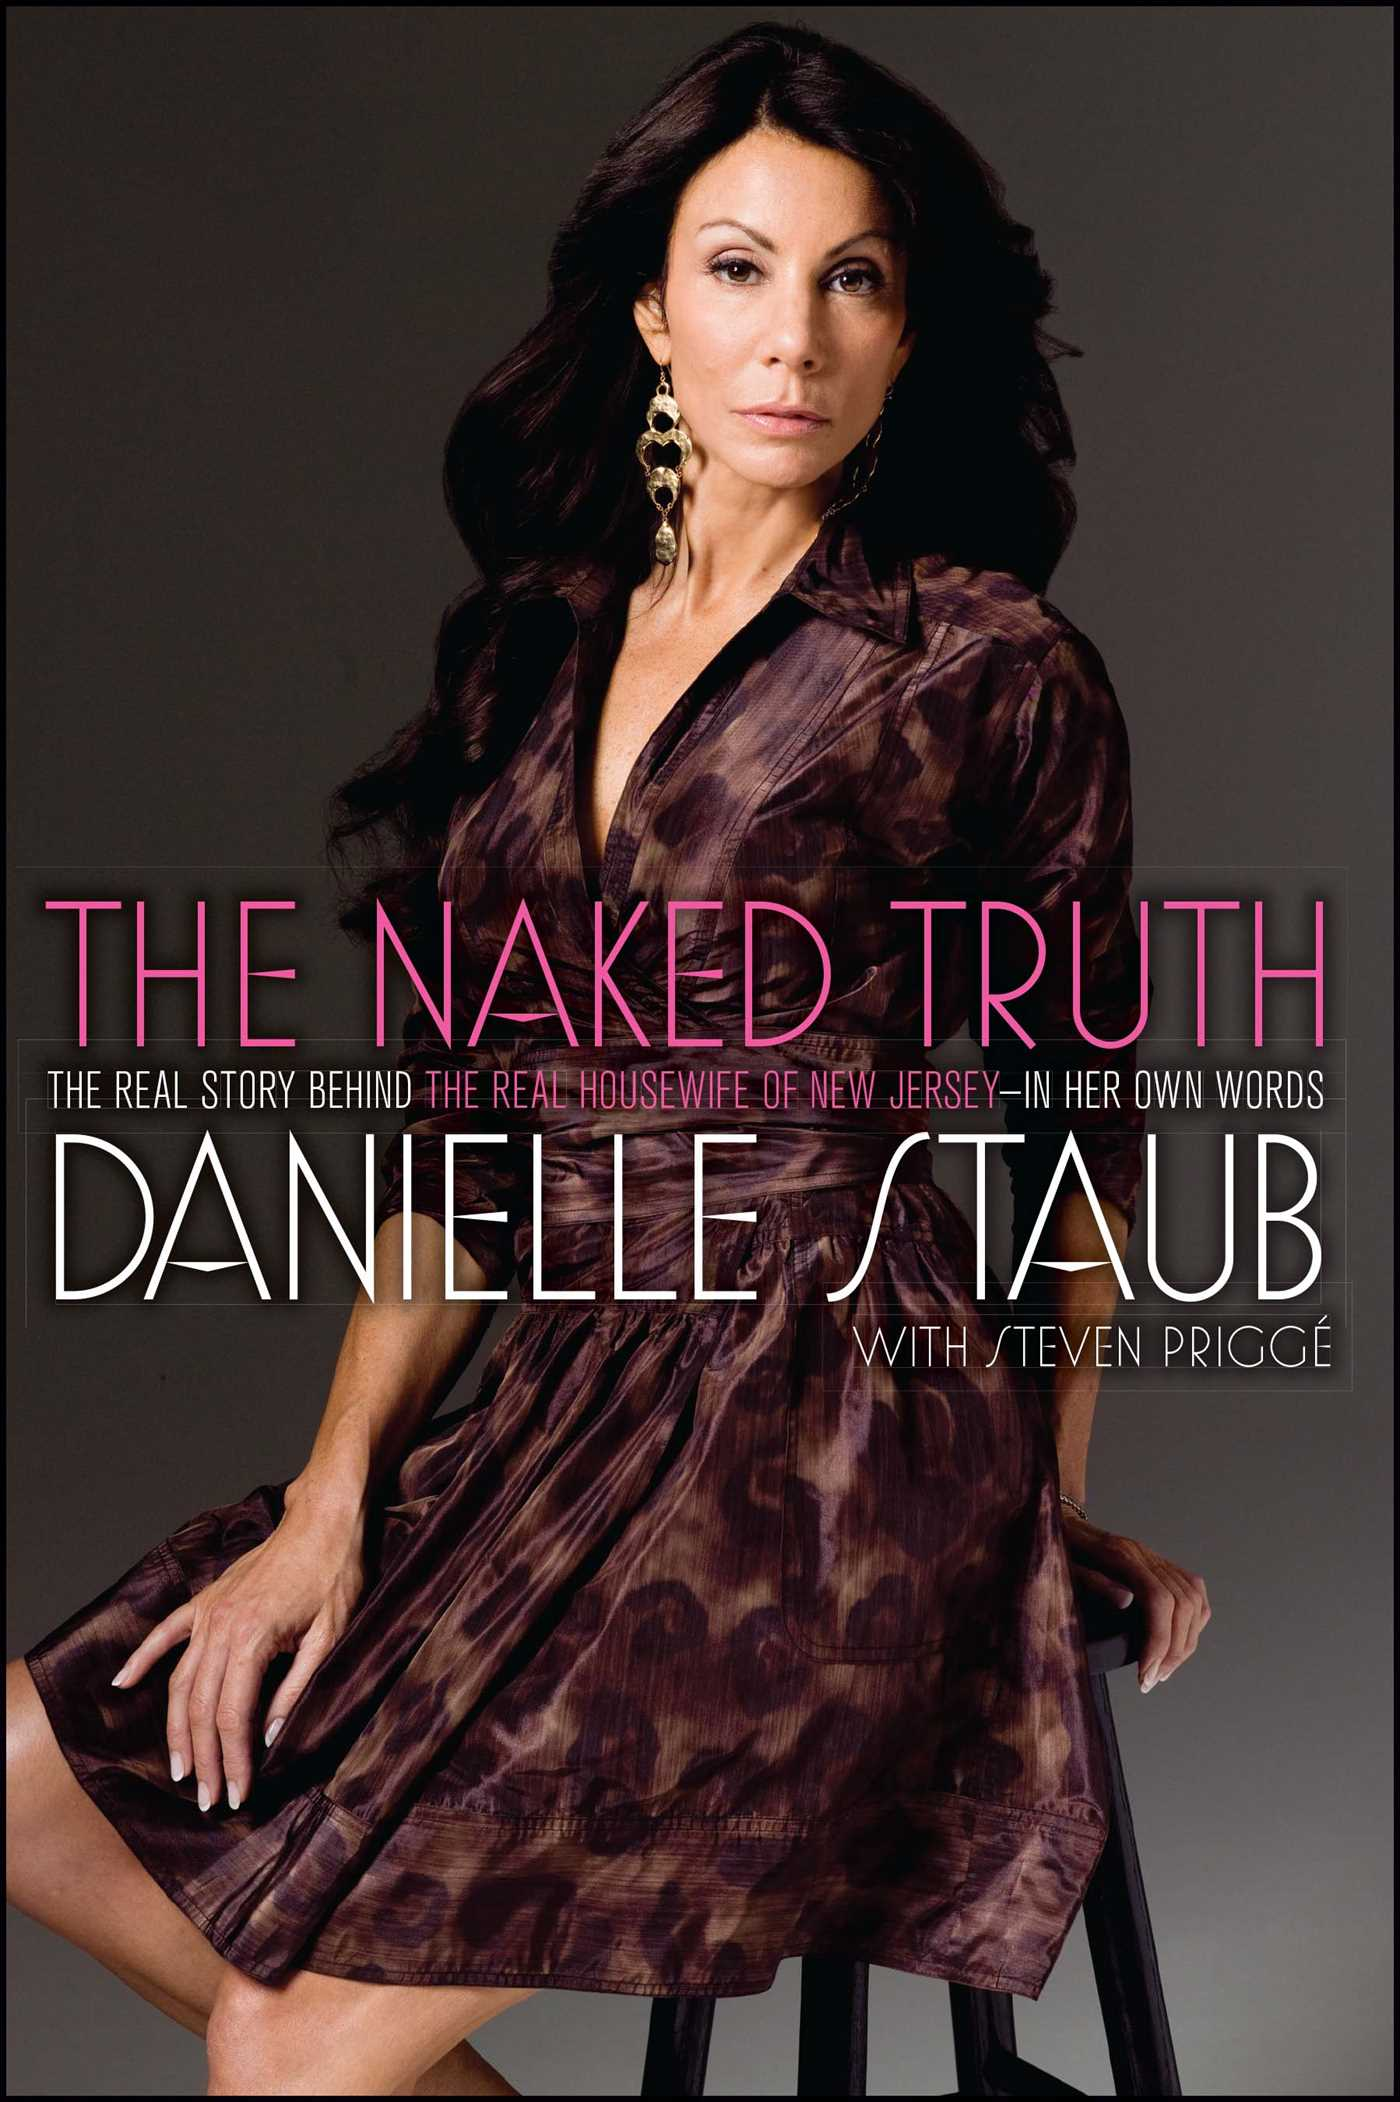 The naked truth 9781439182918 hr